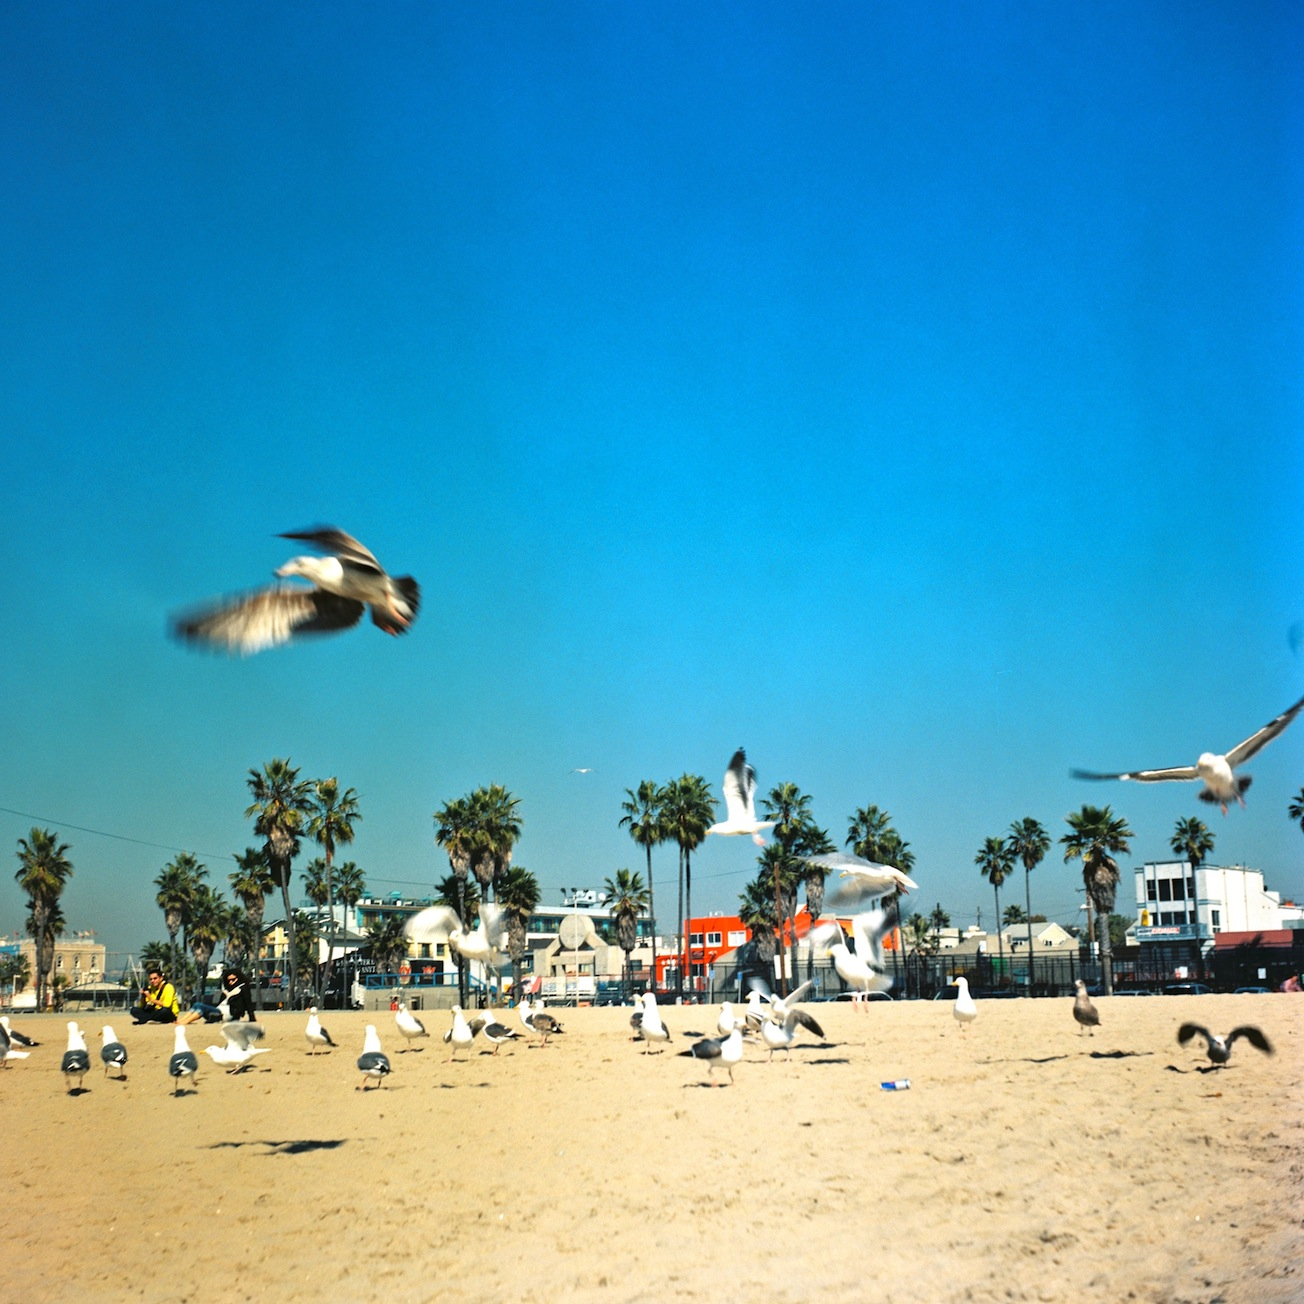 Seagulls, Los Angeles